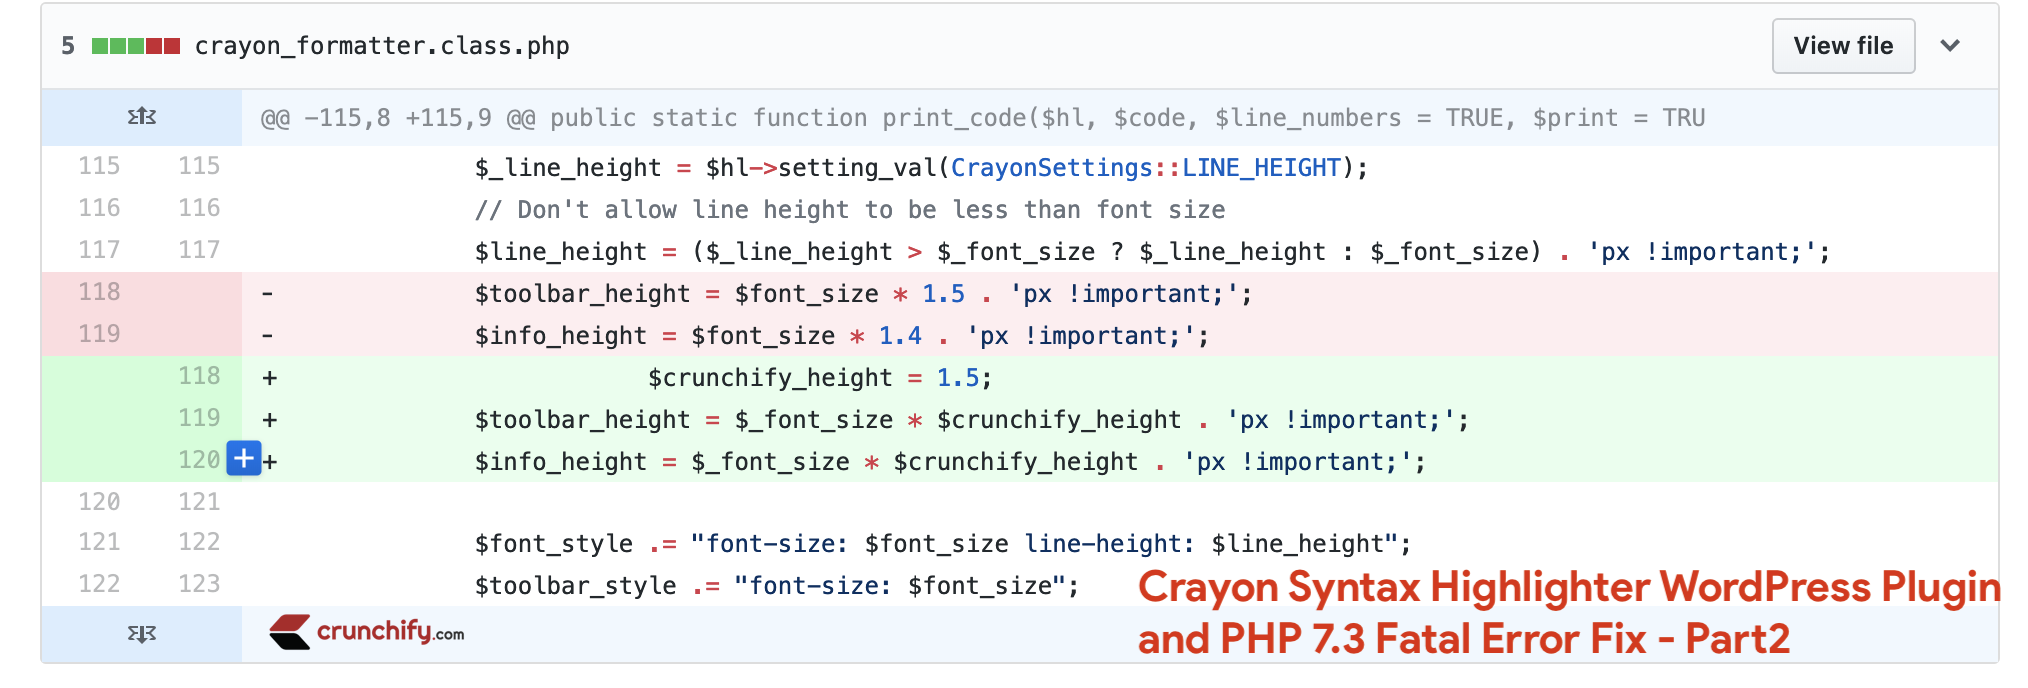 Crayon Syntax Highlighter PHP 7.3 fix - crayon_formatter.class.php